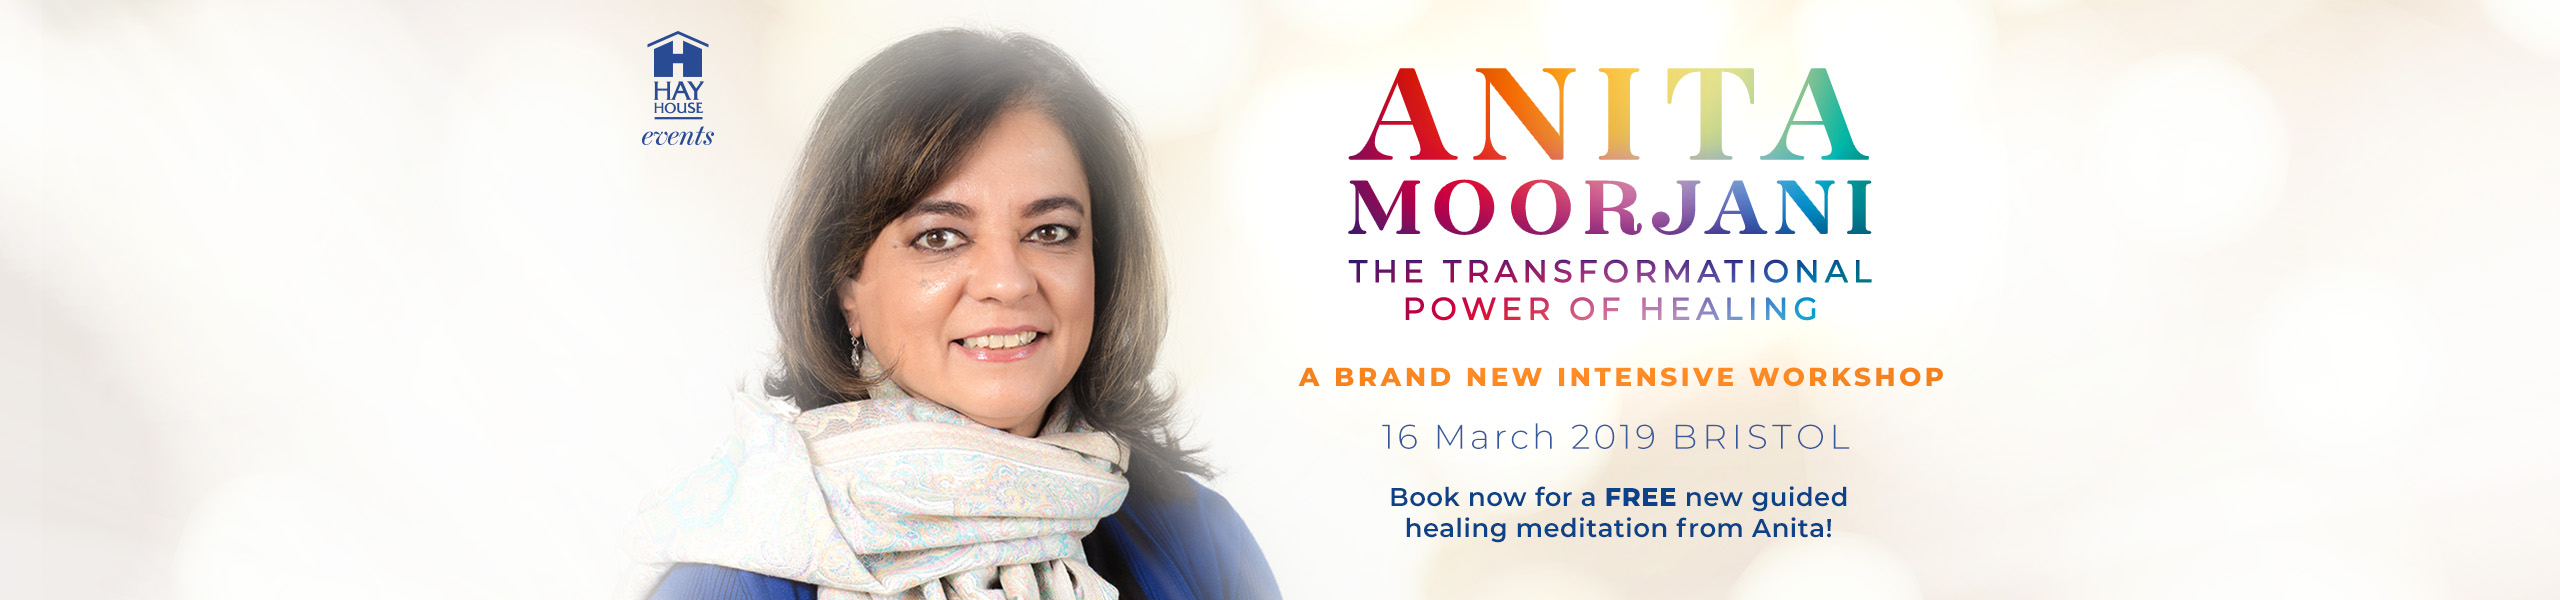 Healing Through the Power of Transformation with Anita Moorjani (Premier)